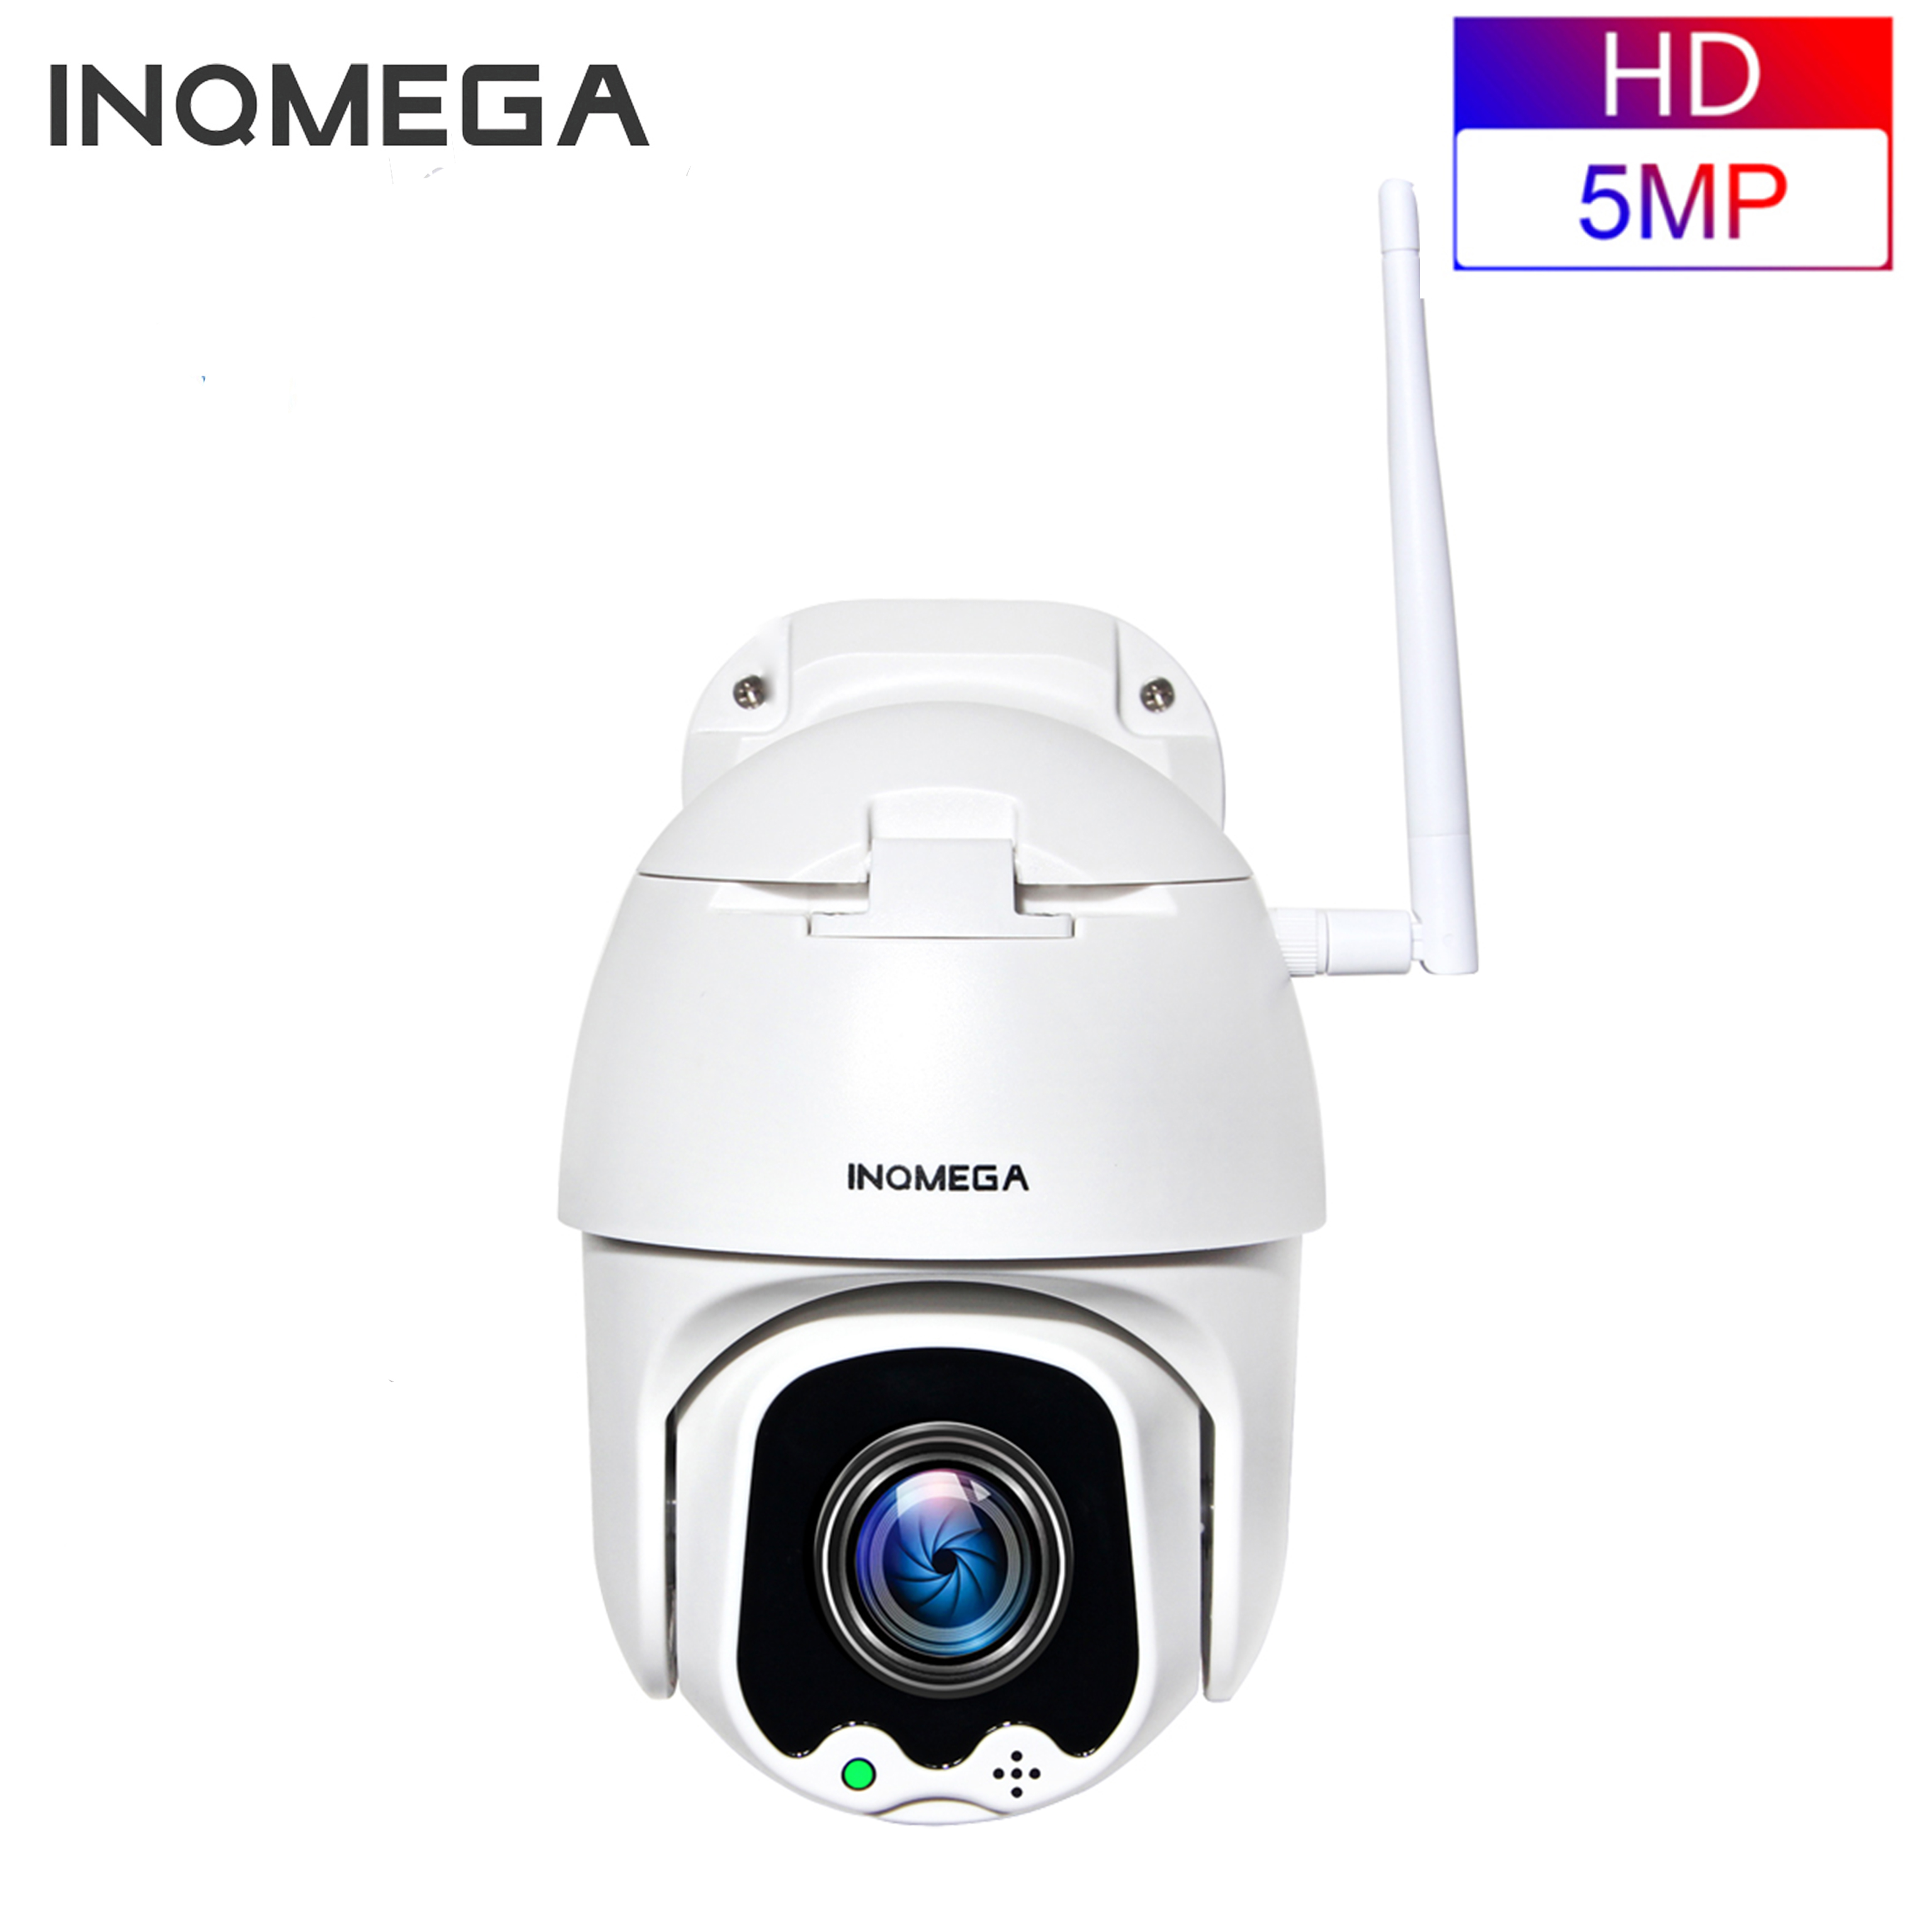 INQMEGA 5MP PTZ Speed Dome IP Camera WiFi Wireless 4X Digital ZOOMOutdoor Security Surveillance Waterproof Networt CCTV Camera